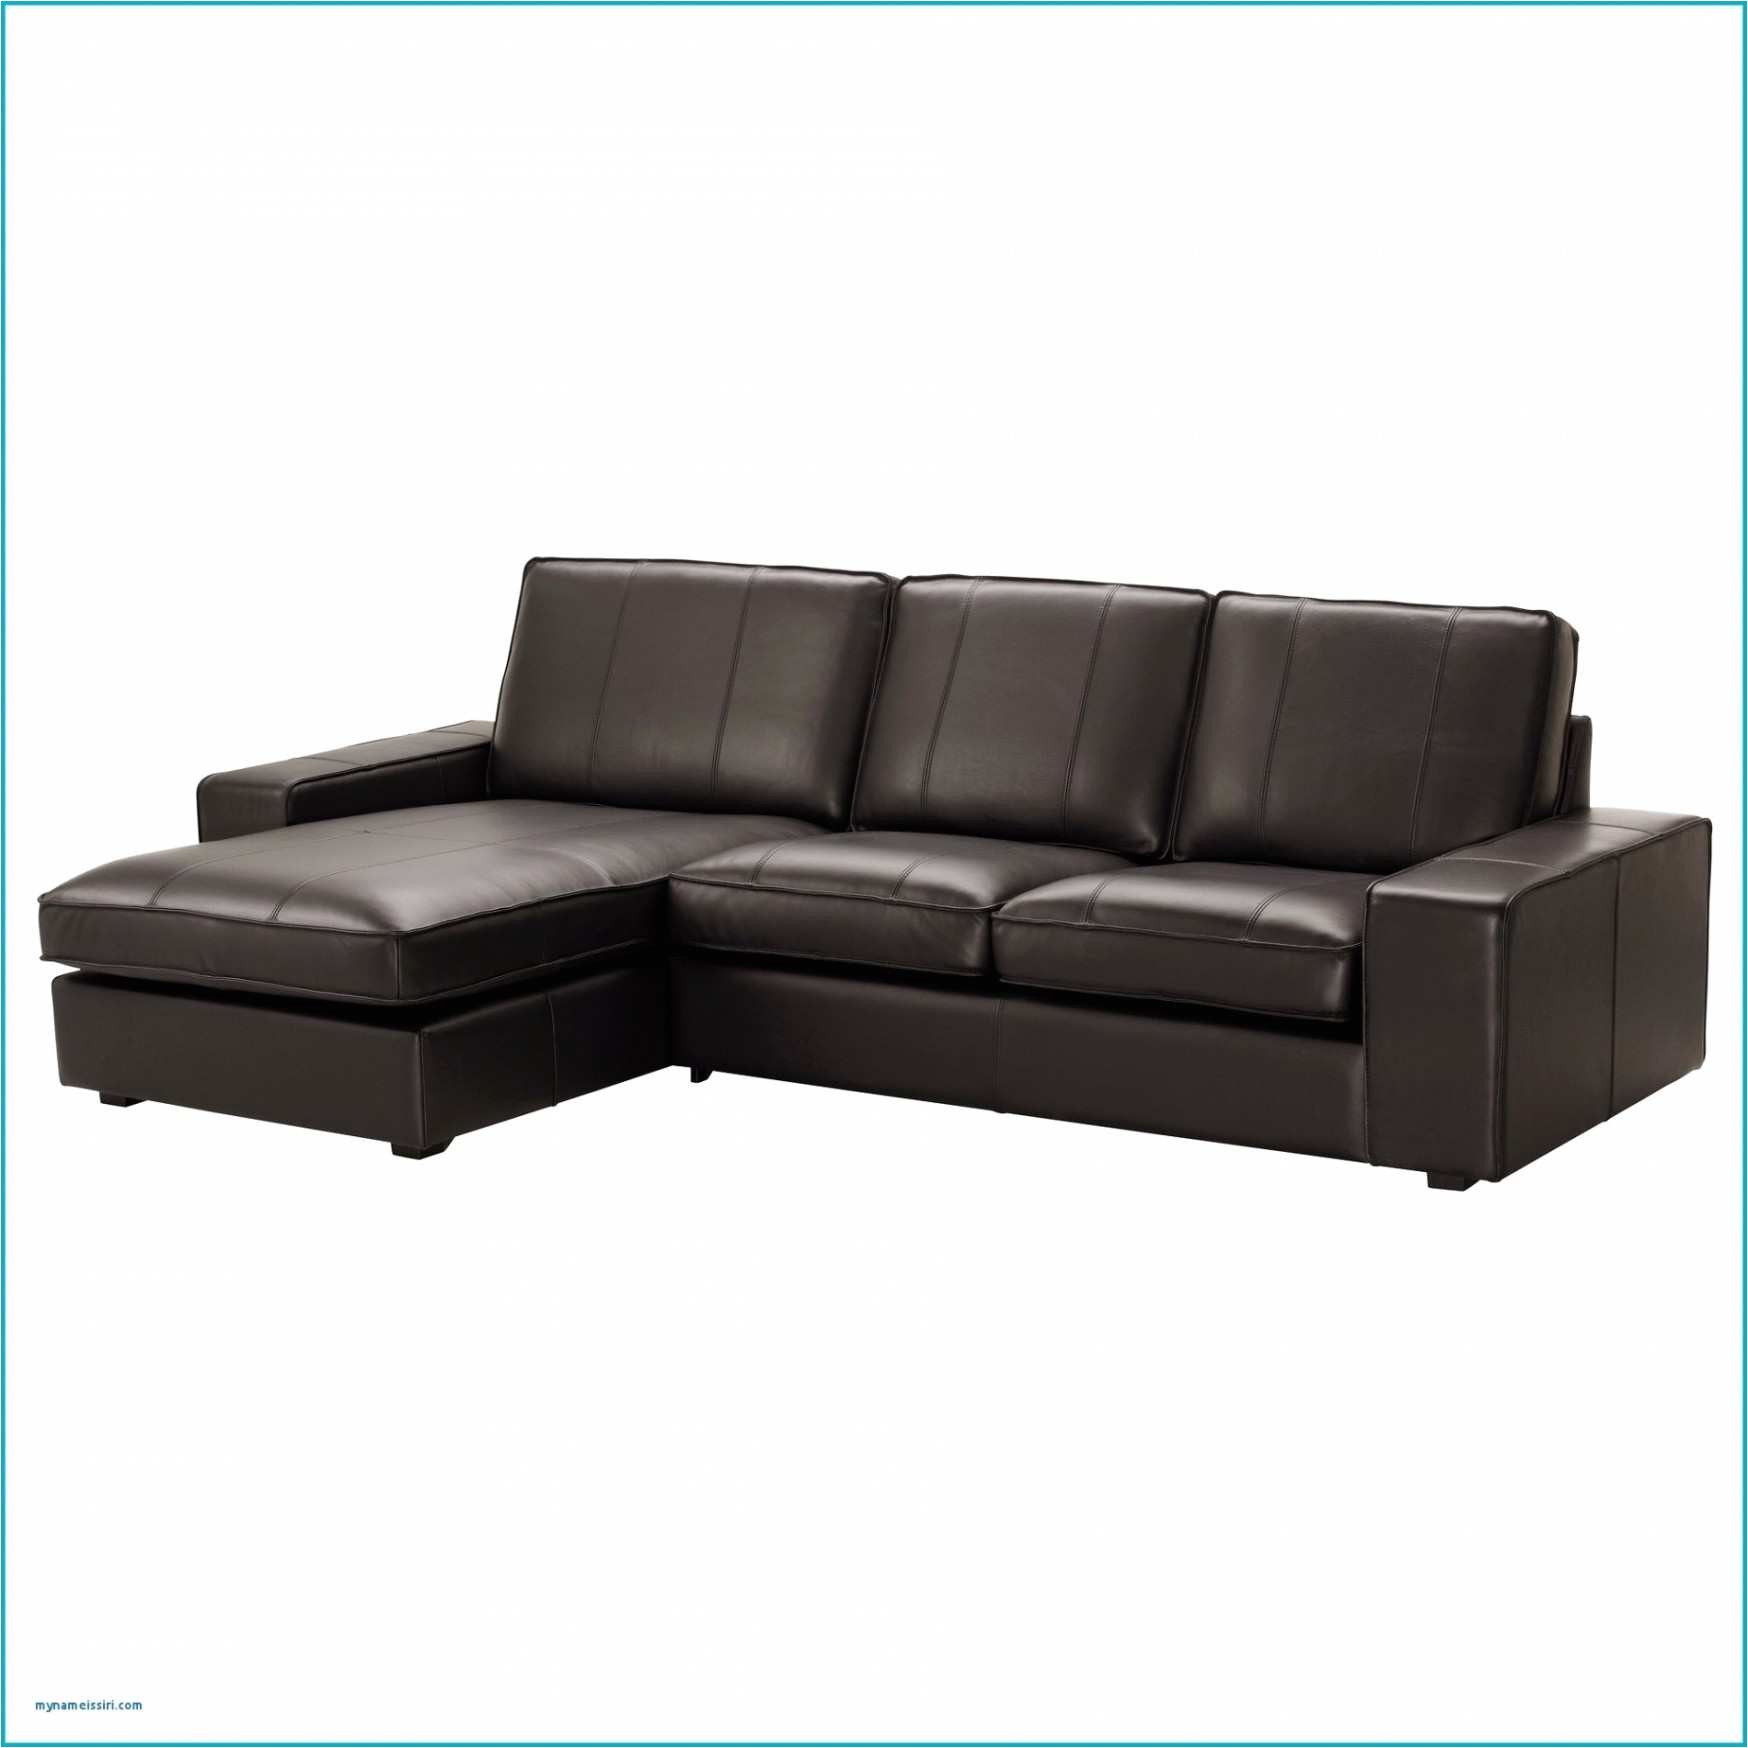 cama armario ikea guapa sofa webstoff neu sofa webstoff super sofa cama new sofa cama 0d